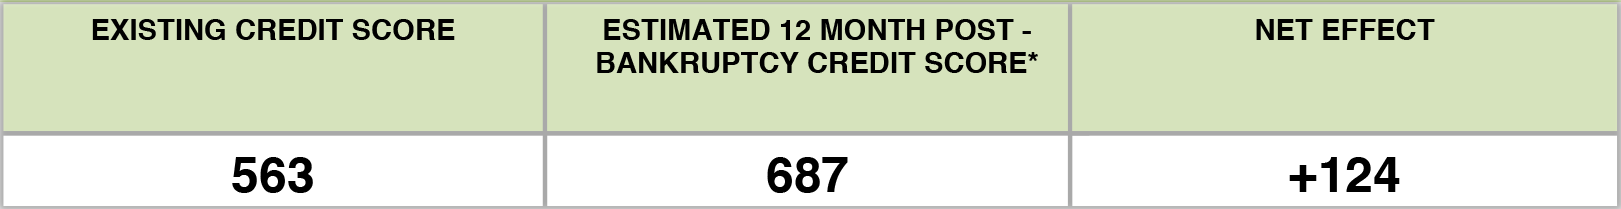 Credit Score Increase from 563 to 687